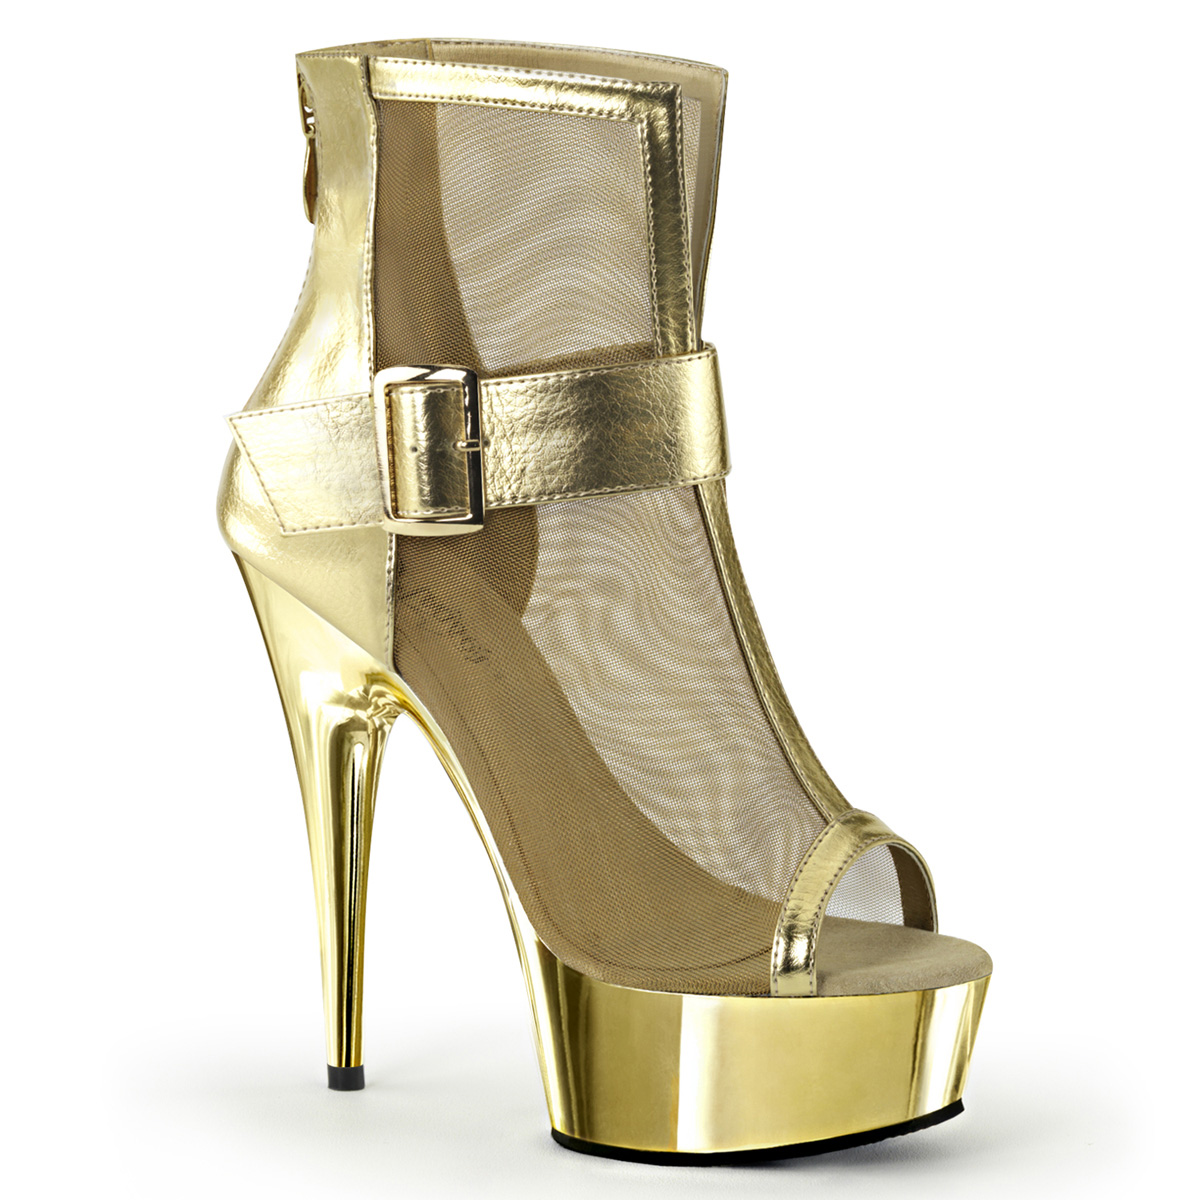 Delight-600-23 Gold Metallic Pu-Mesh/Gold Chrome by Pleaser USA